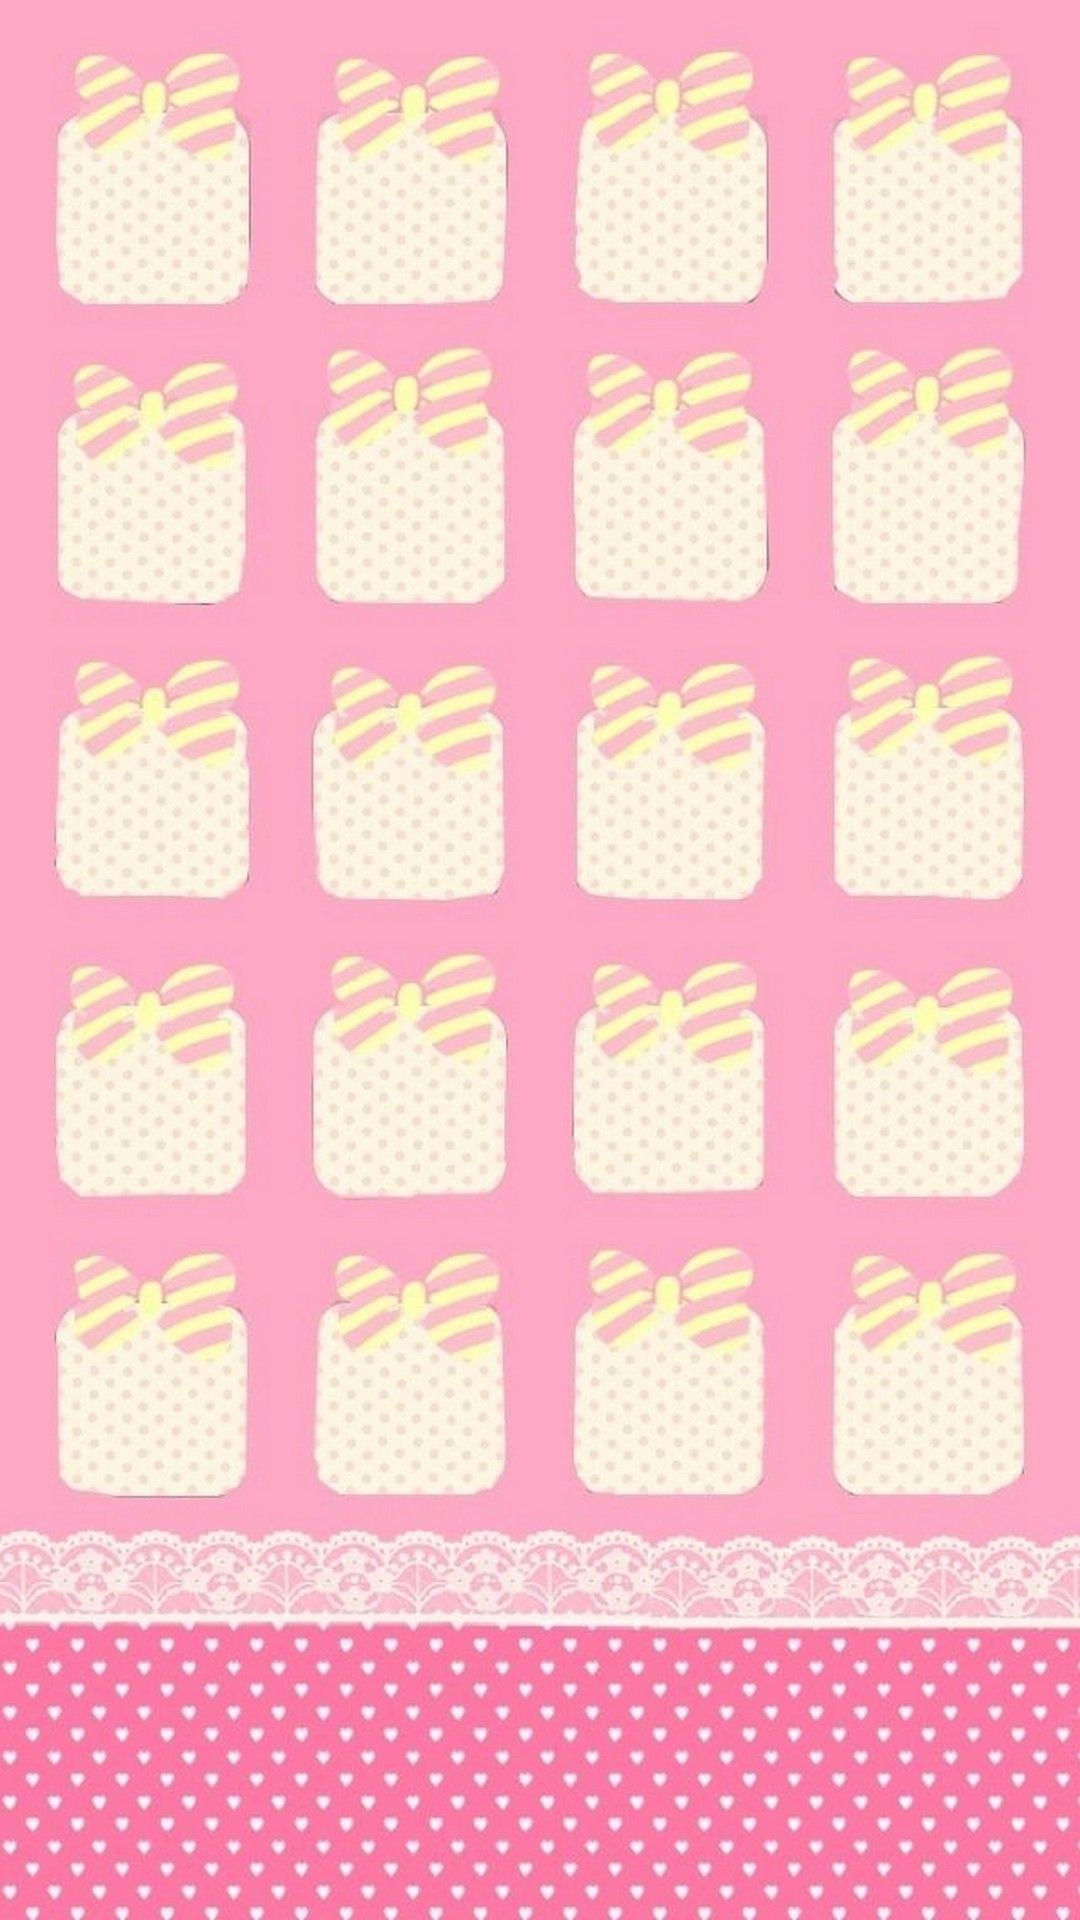 Girly Wallpapers For Mobile Phones